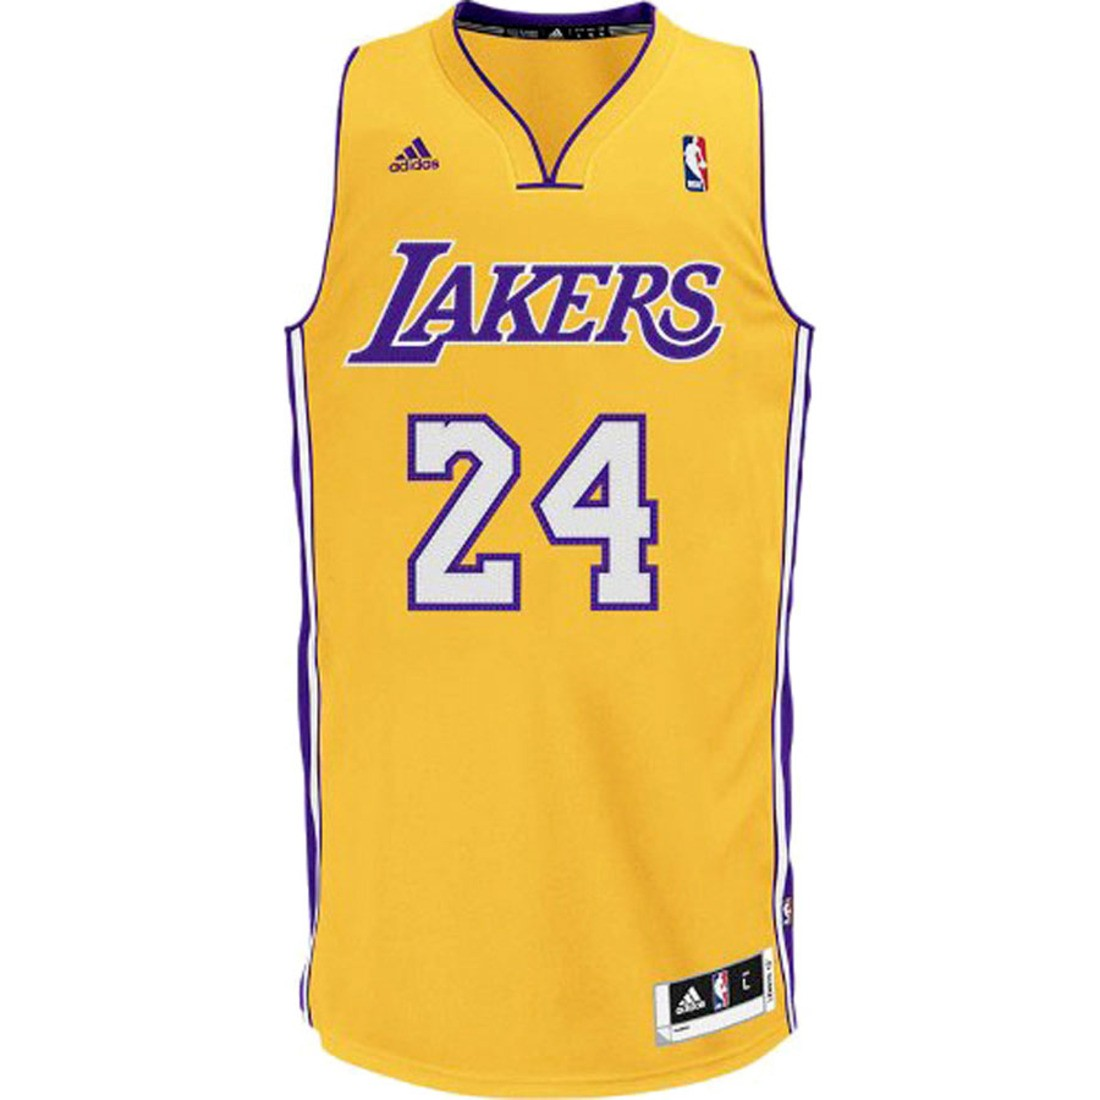 Details. Transform your b-ball wardrobe with the Adidas Revolution 30  Swingman gold Kobe Bryant jersey. cb44fd346